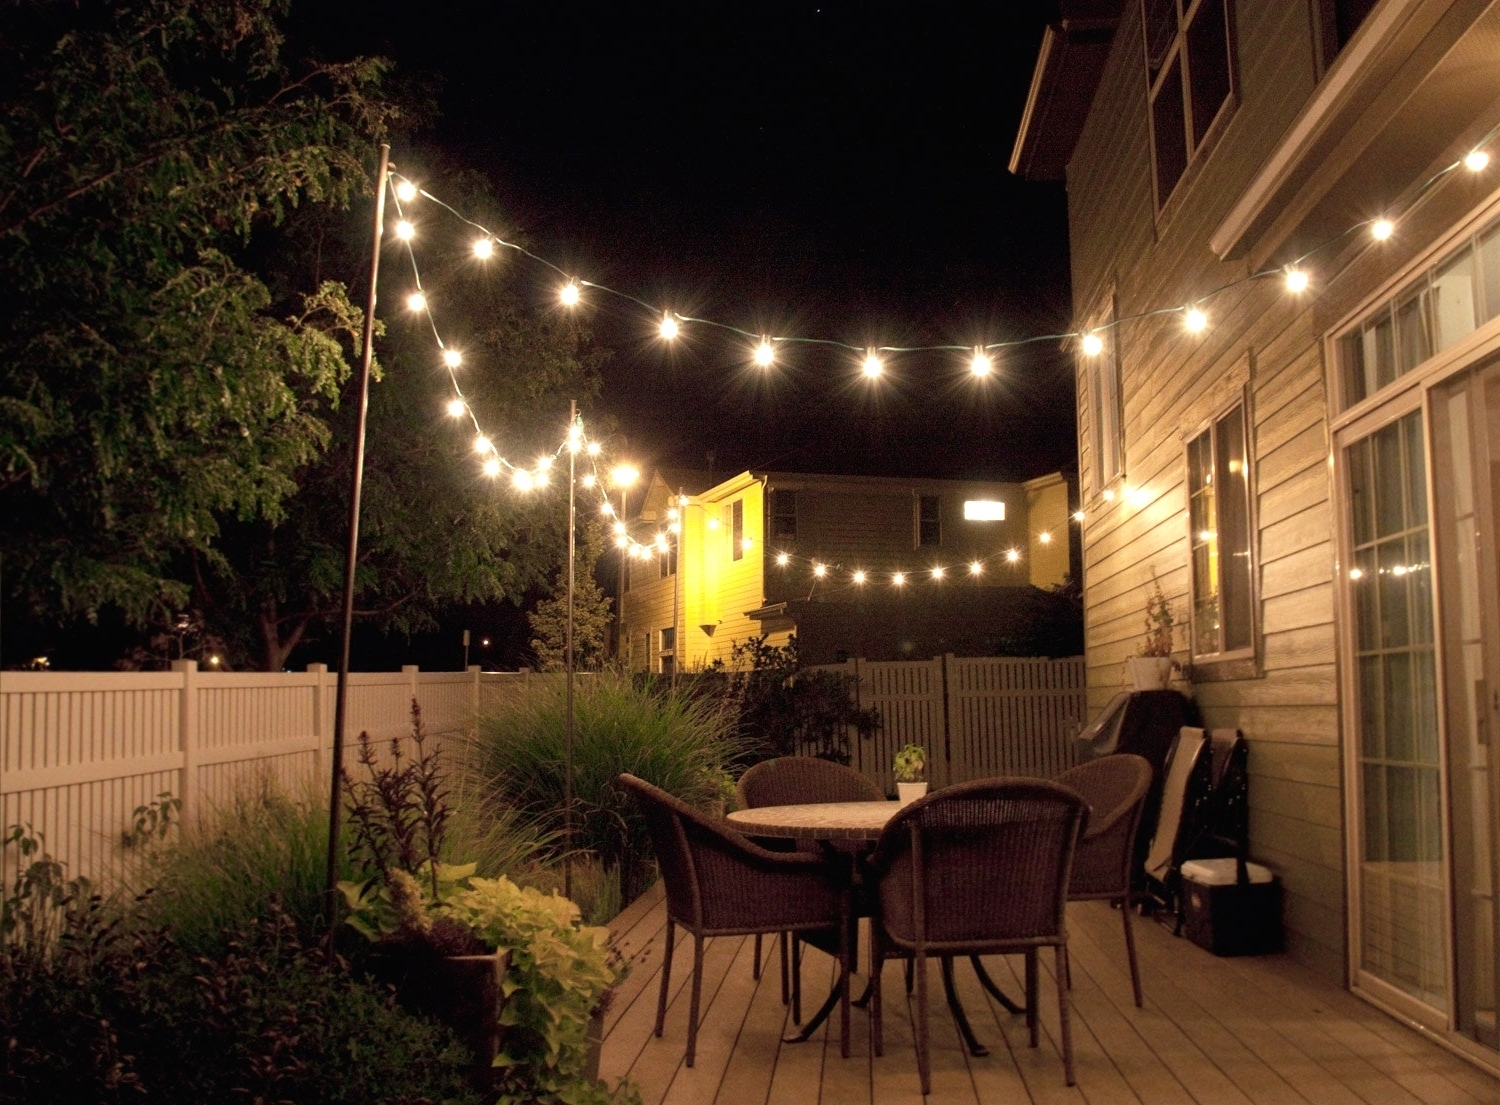 Outdoor Hanging Lights Bulbs Pertaining To Most Recently Released Outdoor Hanging Light Bulbs And Bulb With Bright July Diy String (View 9 of 20)